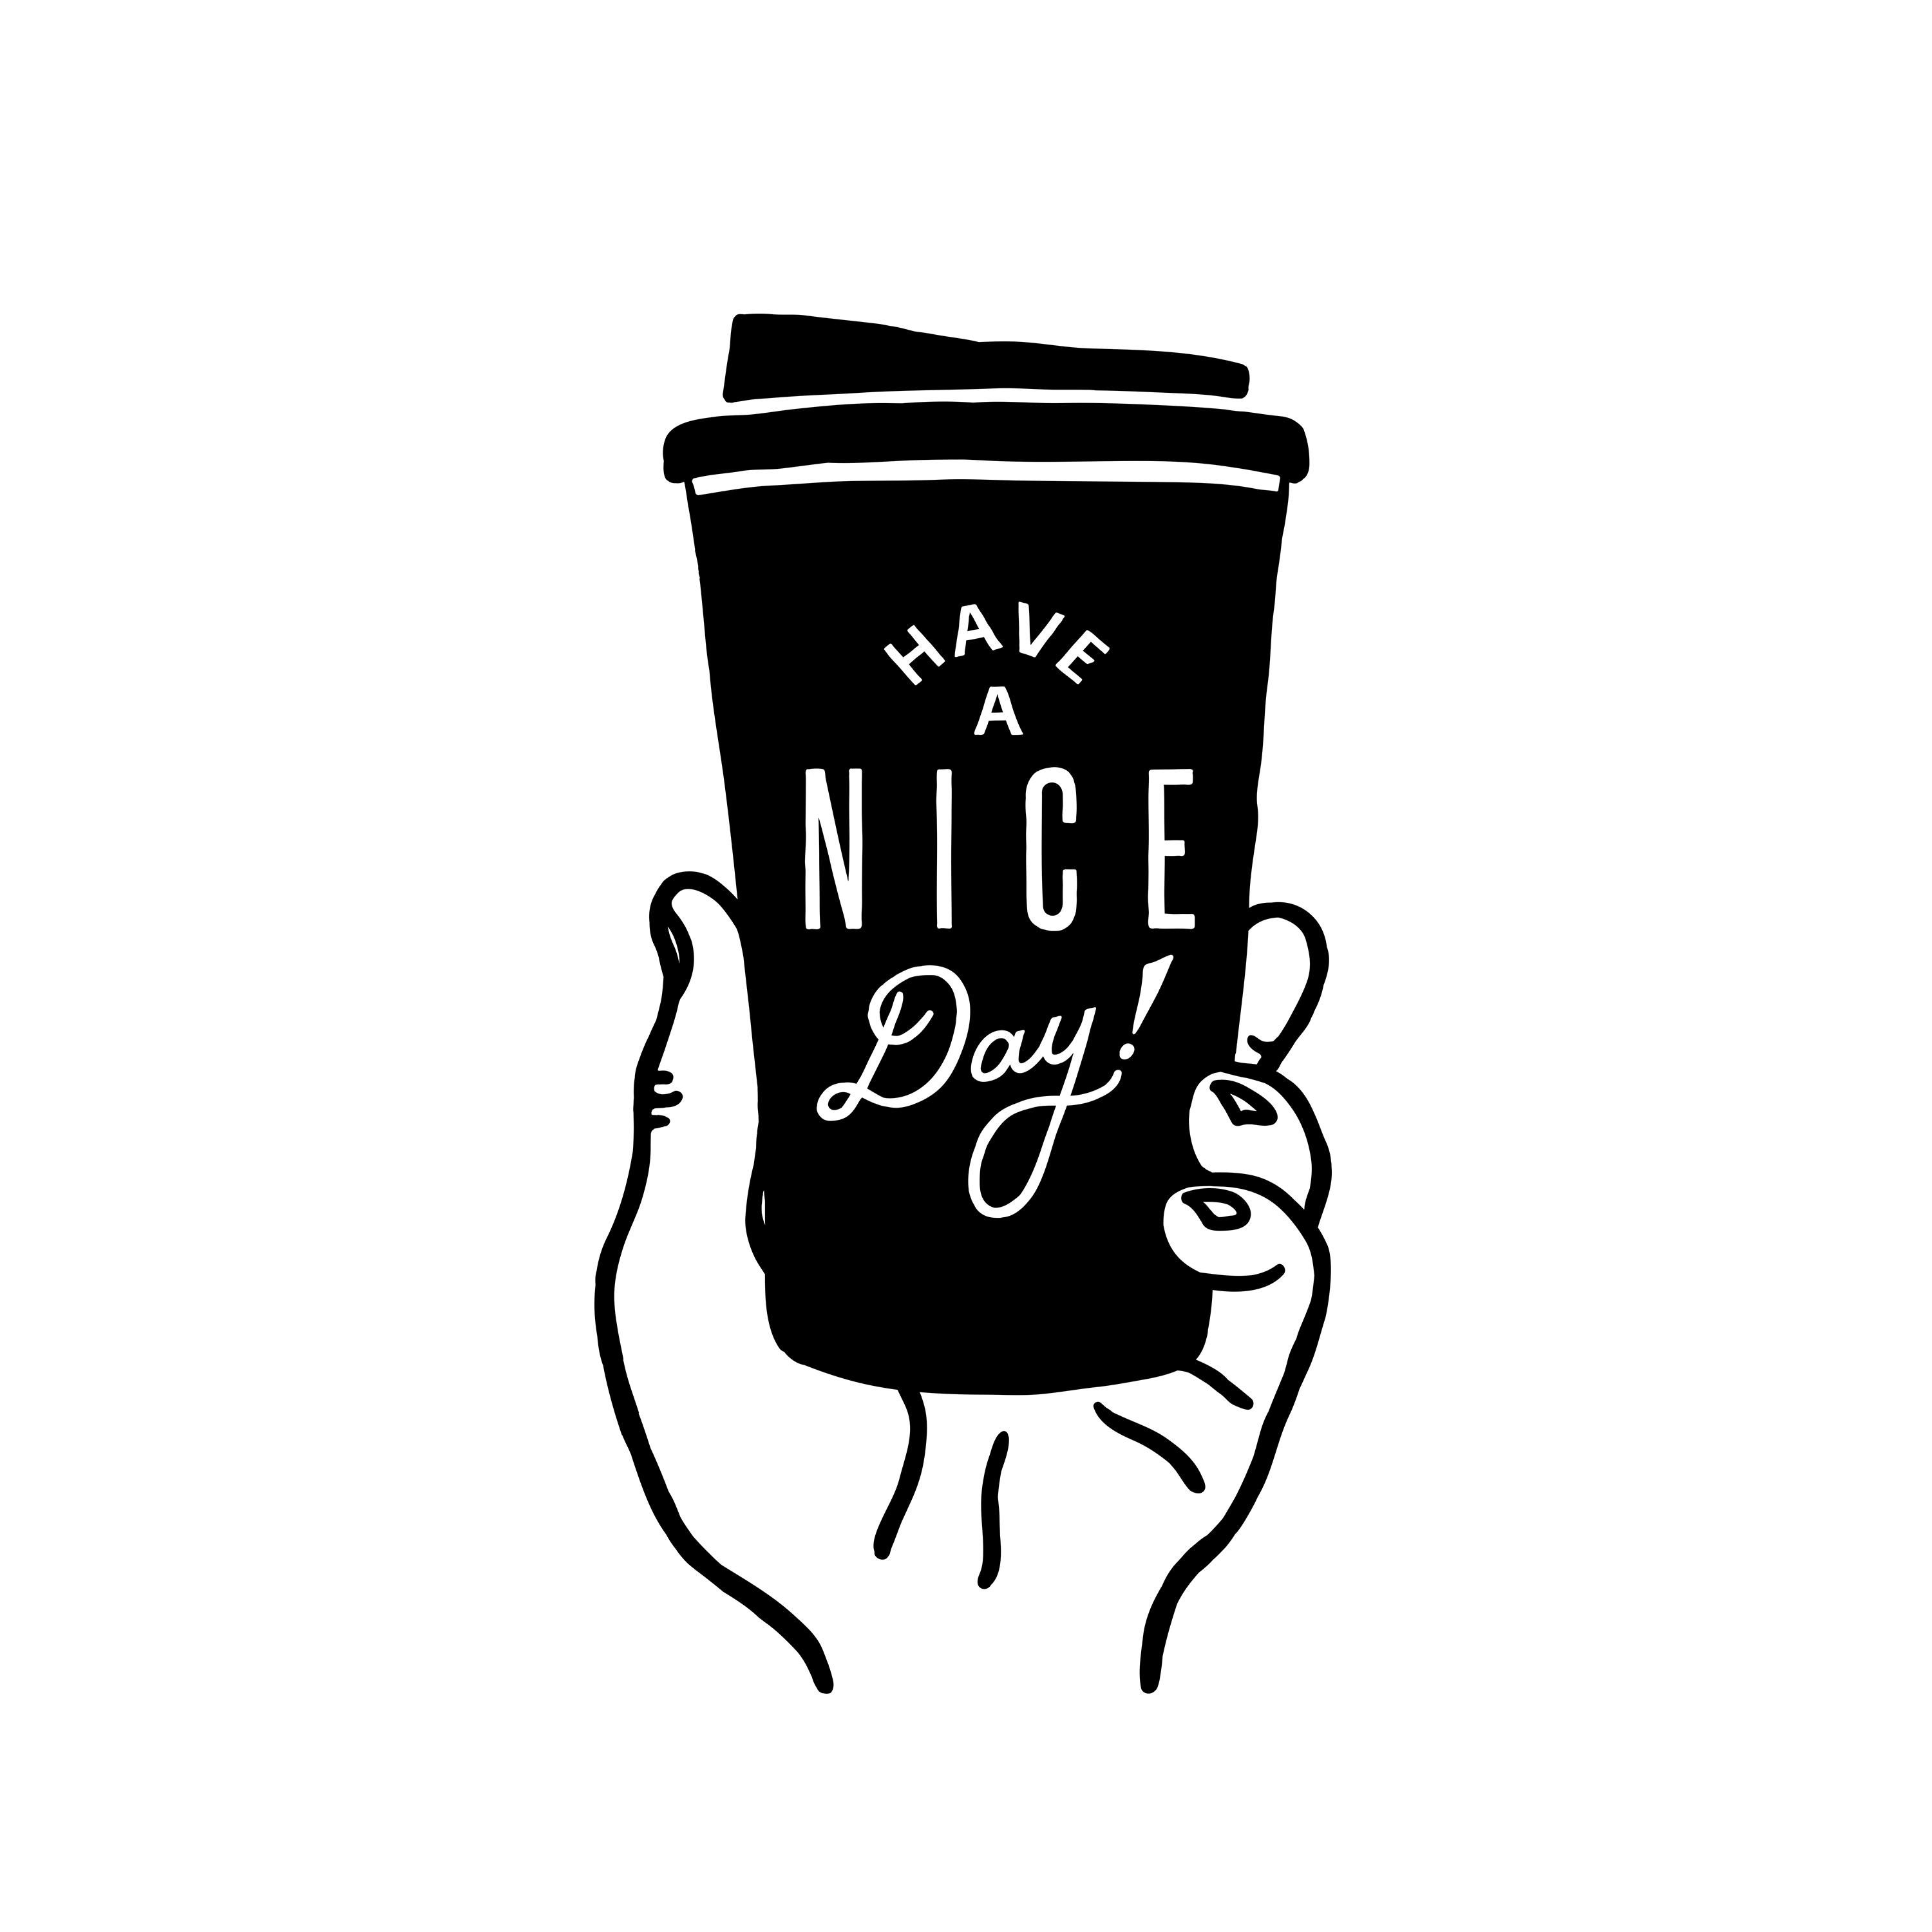 COFFEE LOGO CAFE LOGO COFFEE CUP ILLUSTRATION CAFE